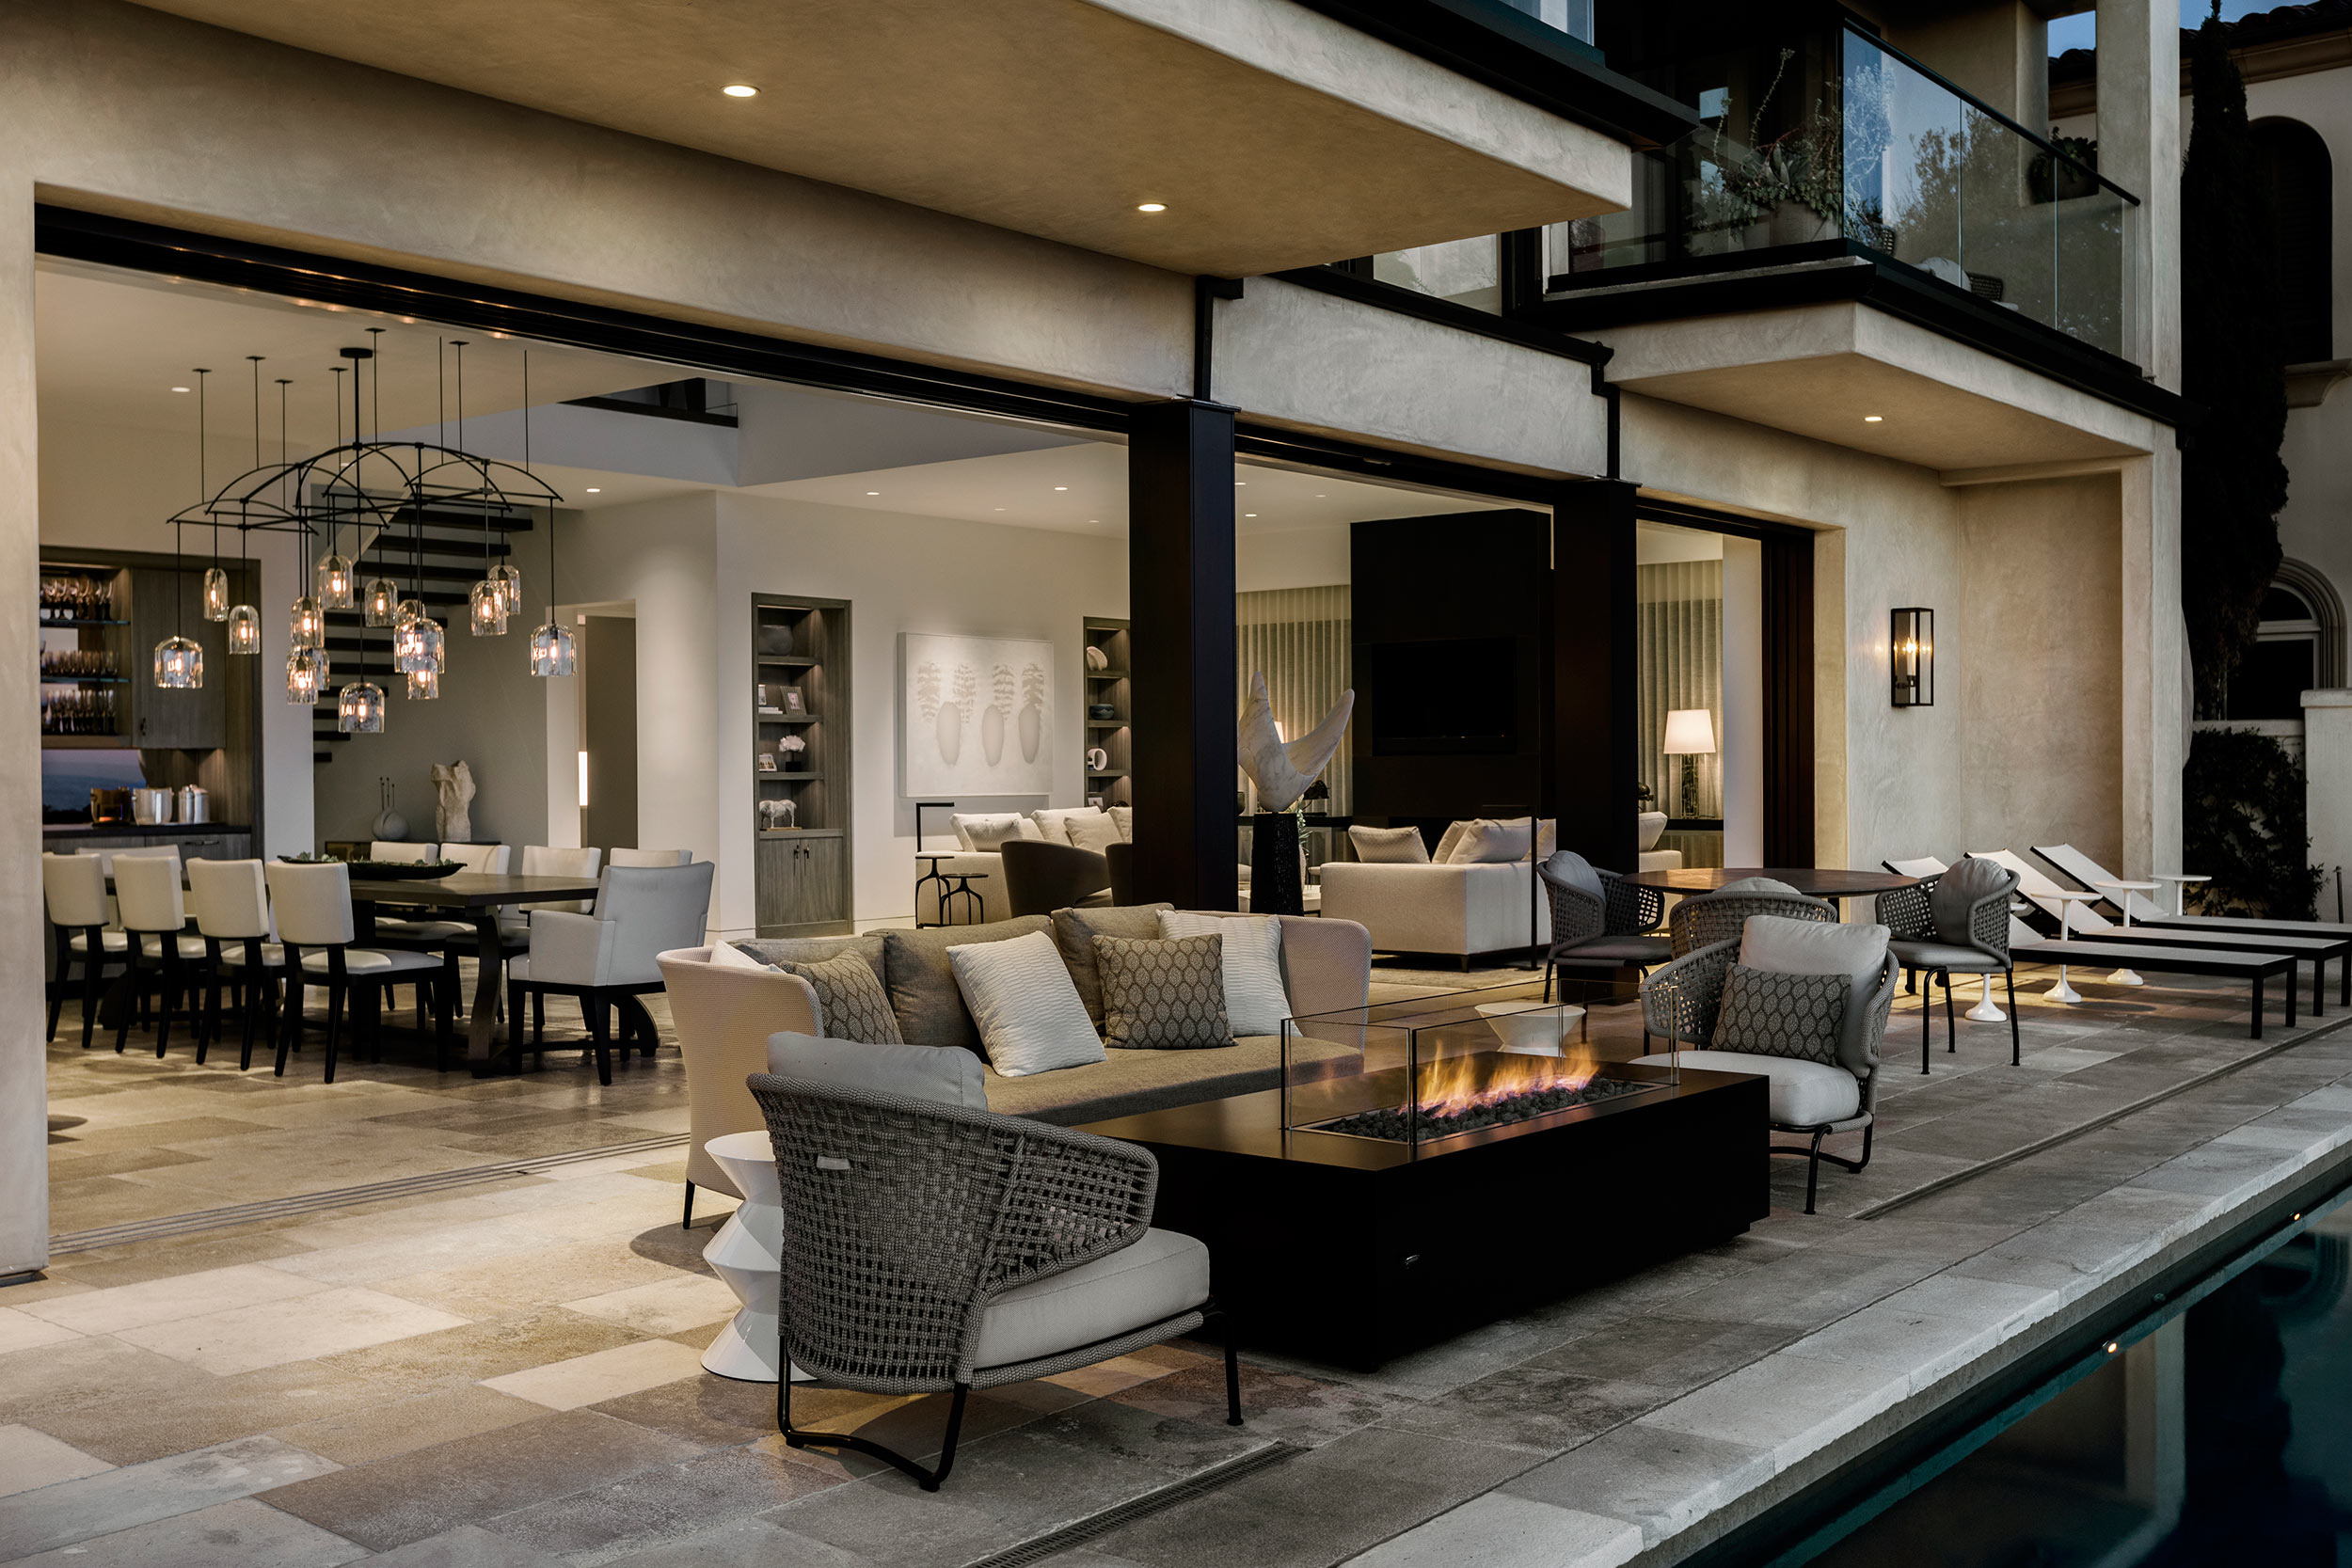 A seating area and custom fire table on the pool deck